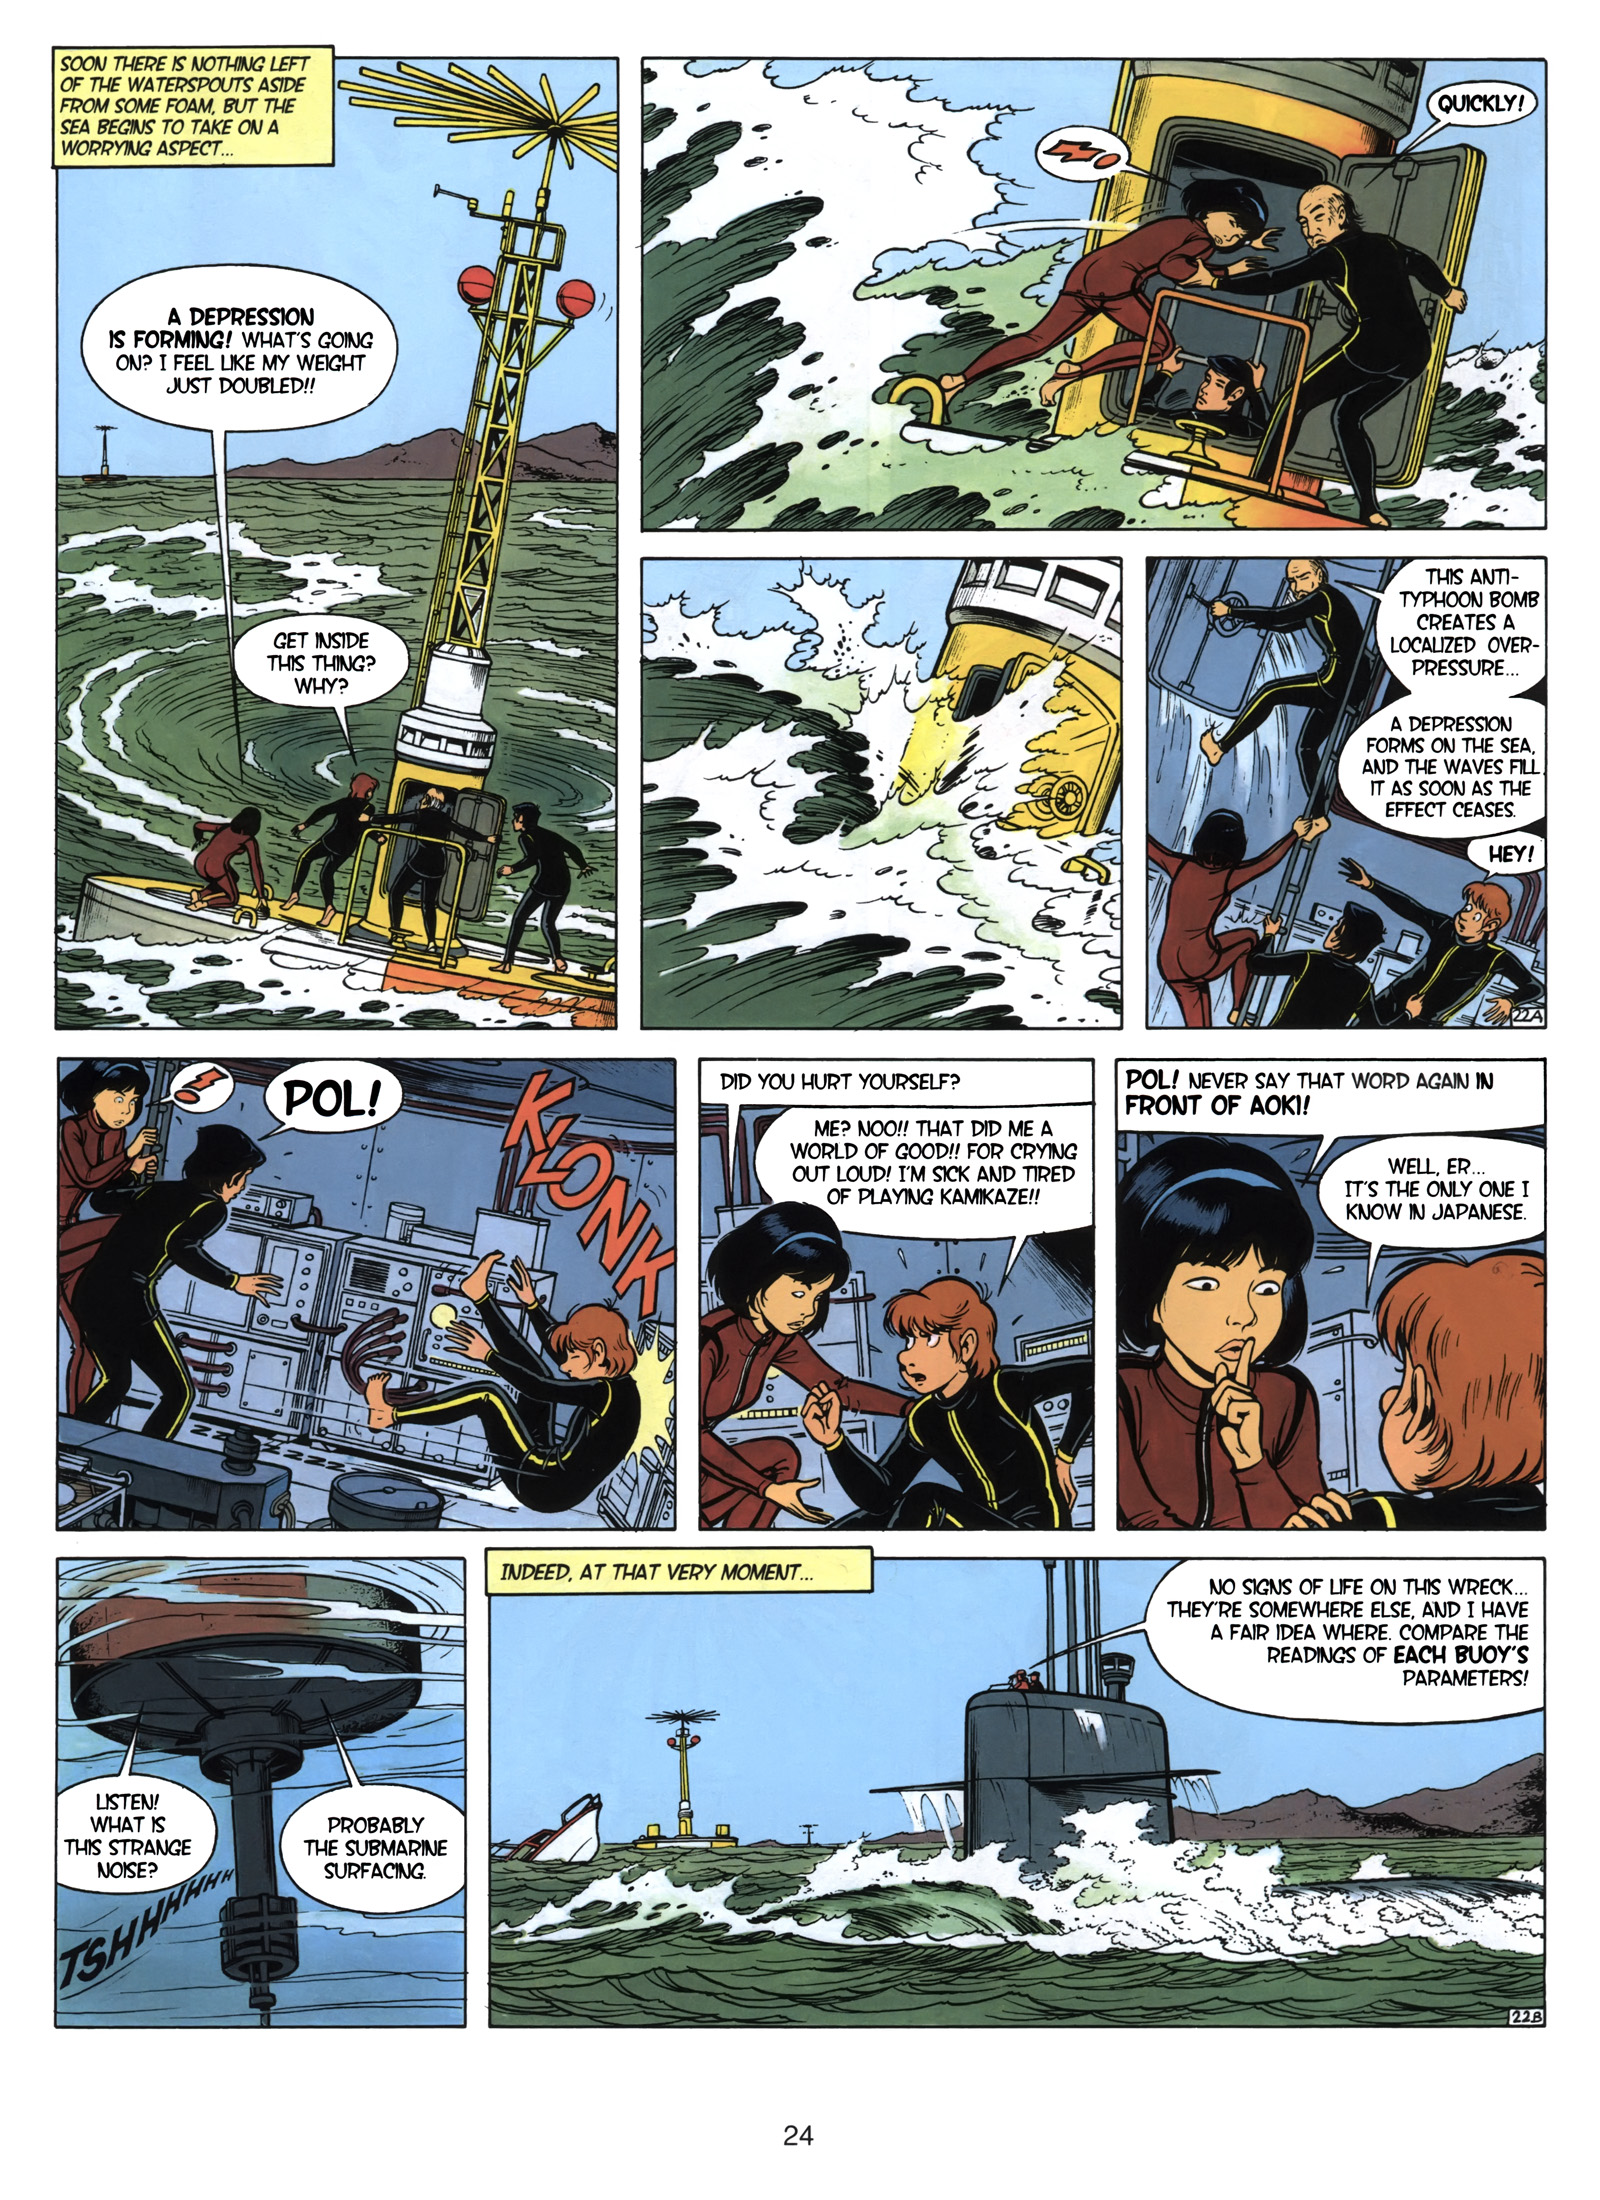 Yoko Tsuno Daughter of the Wind review